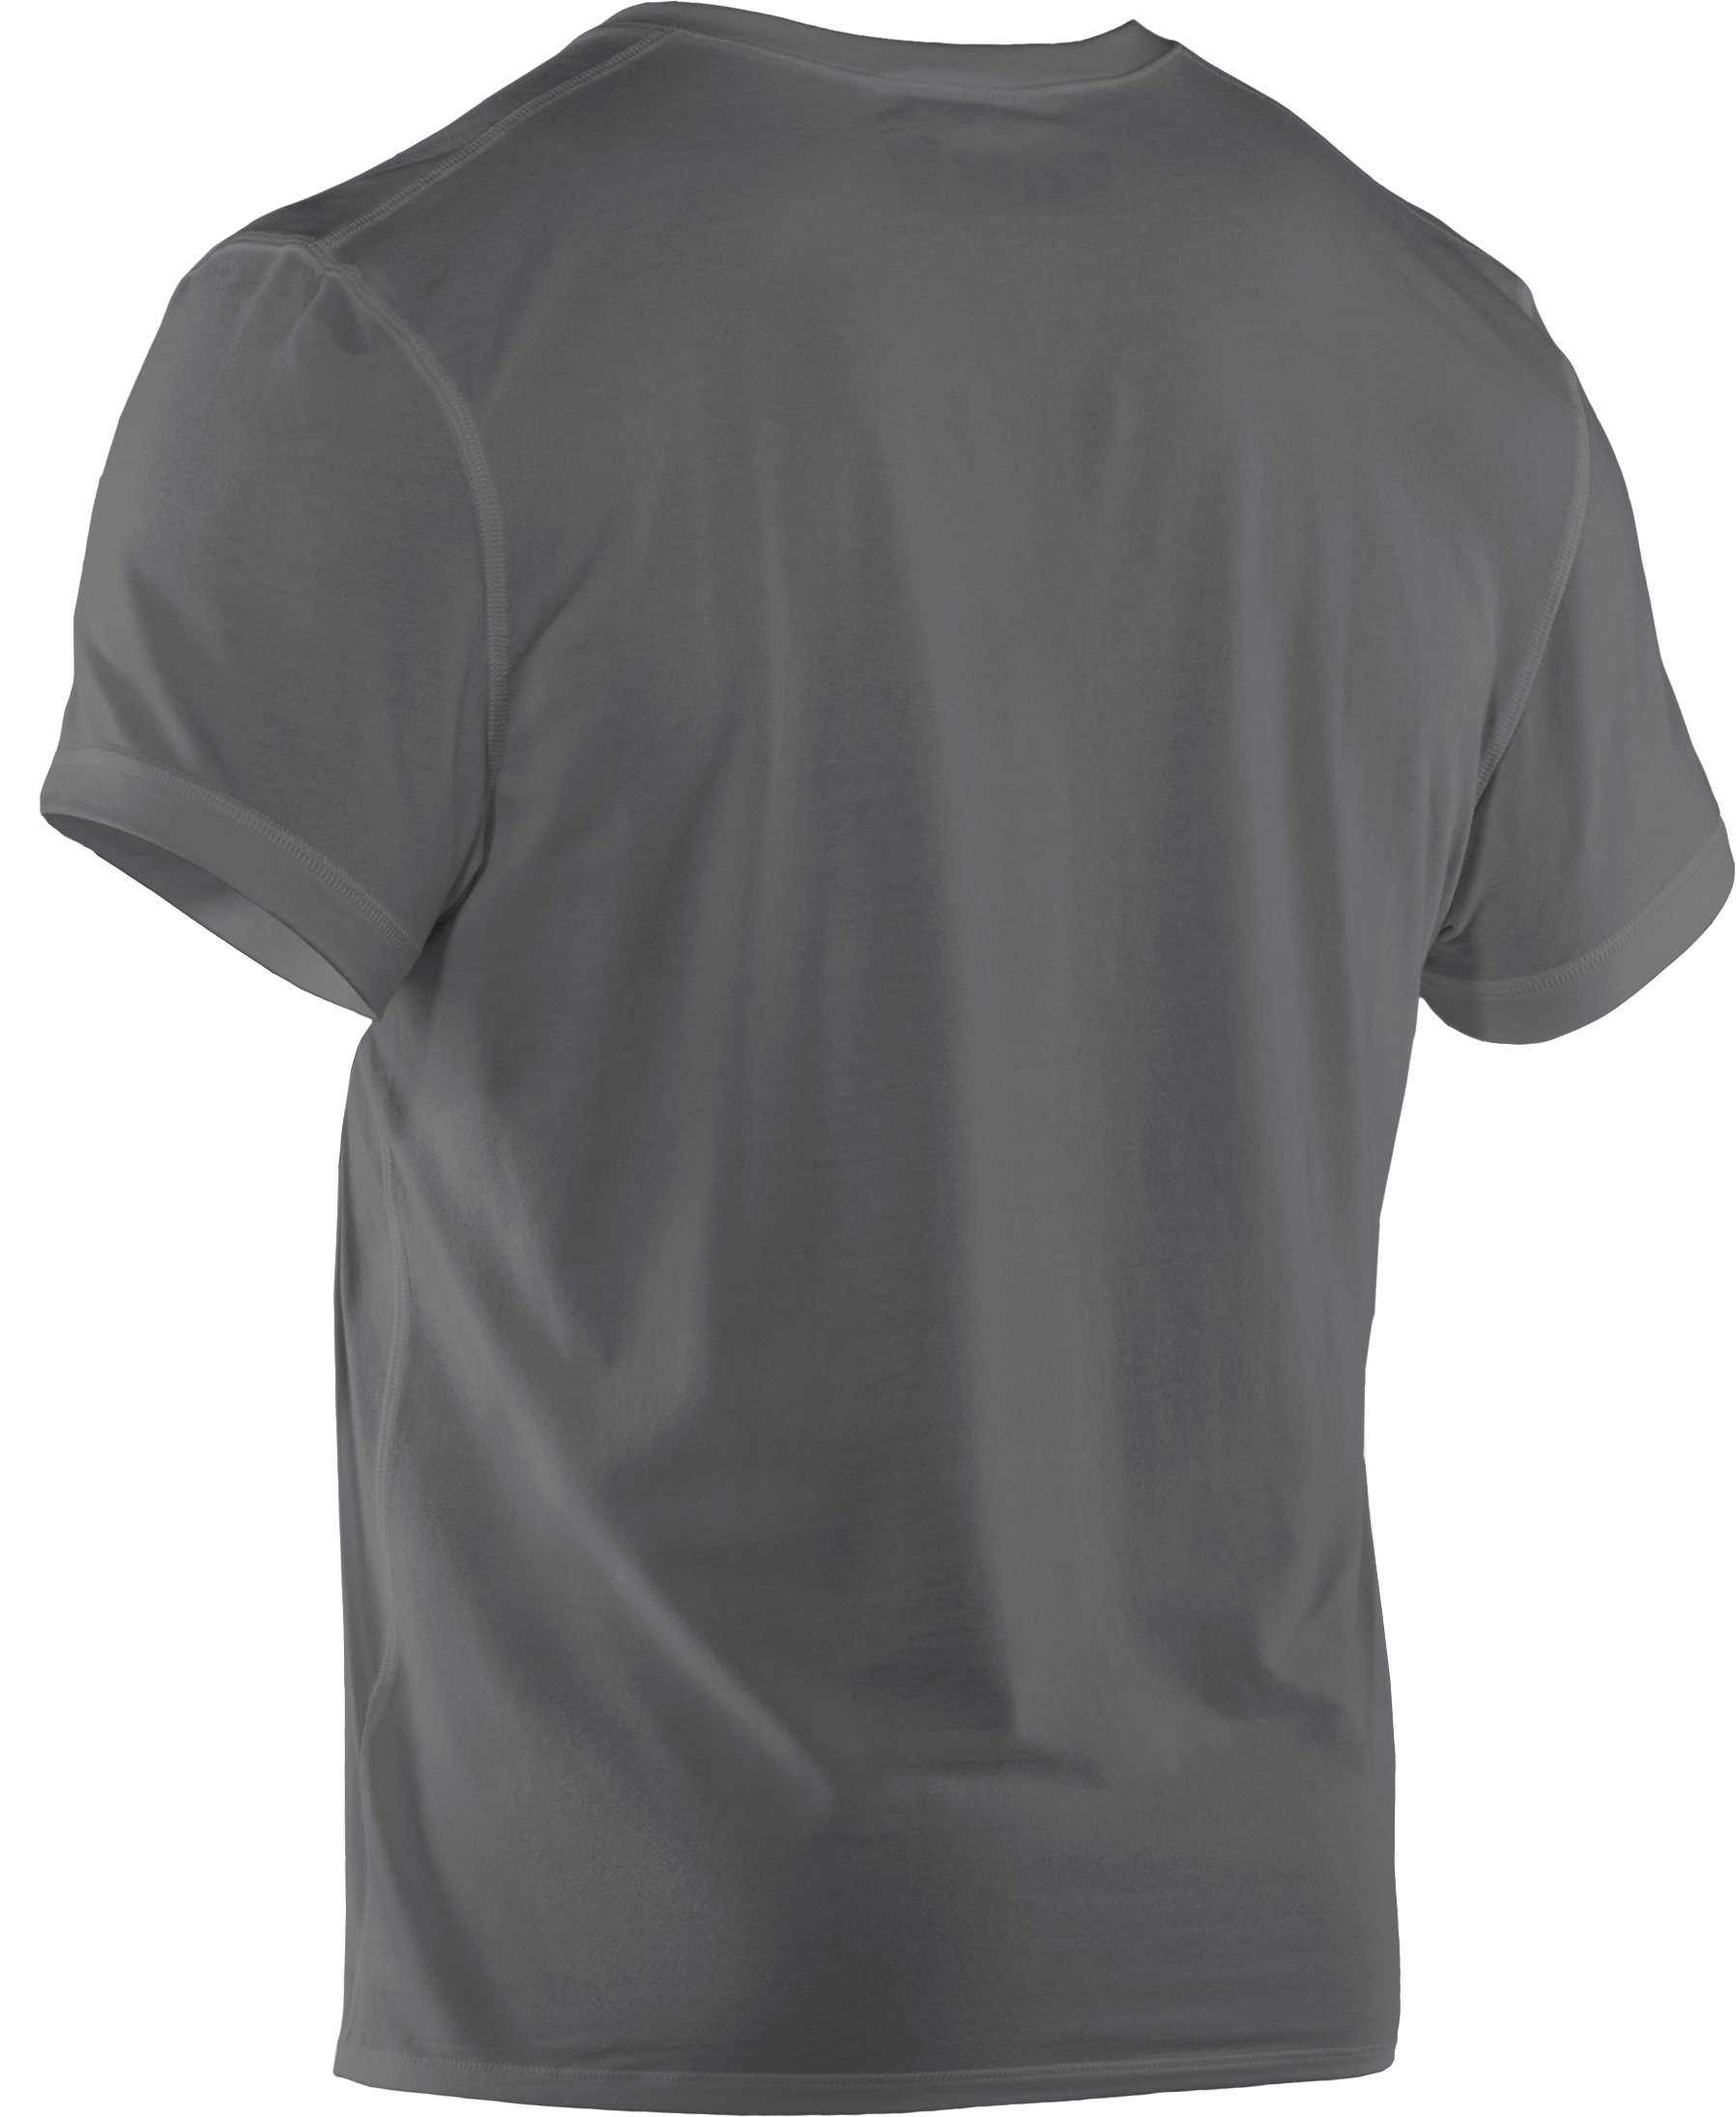 Men's Charged Cotton® Crew Undershirt, Graphite